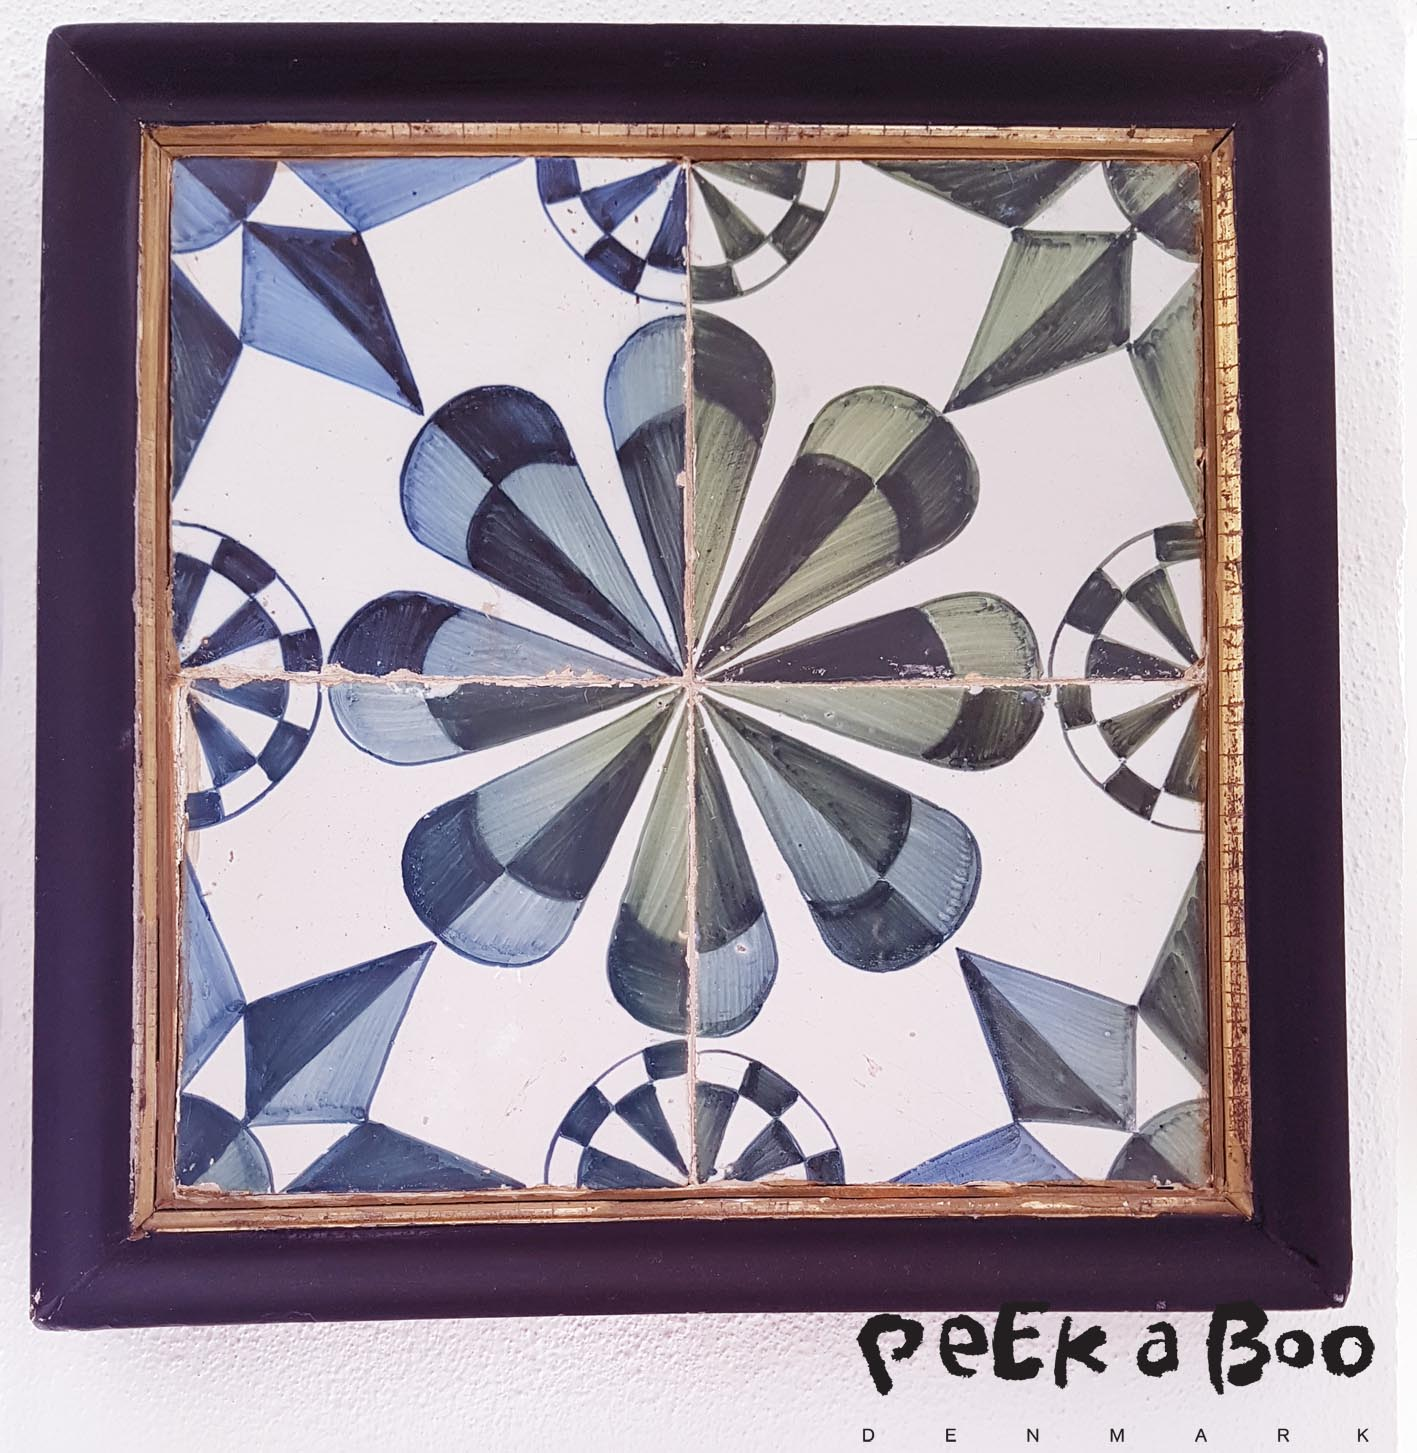 4-pas is four different tiles put together to form a pattern.